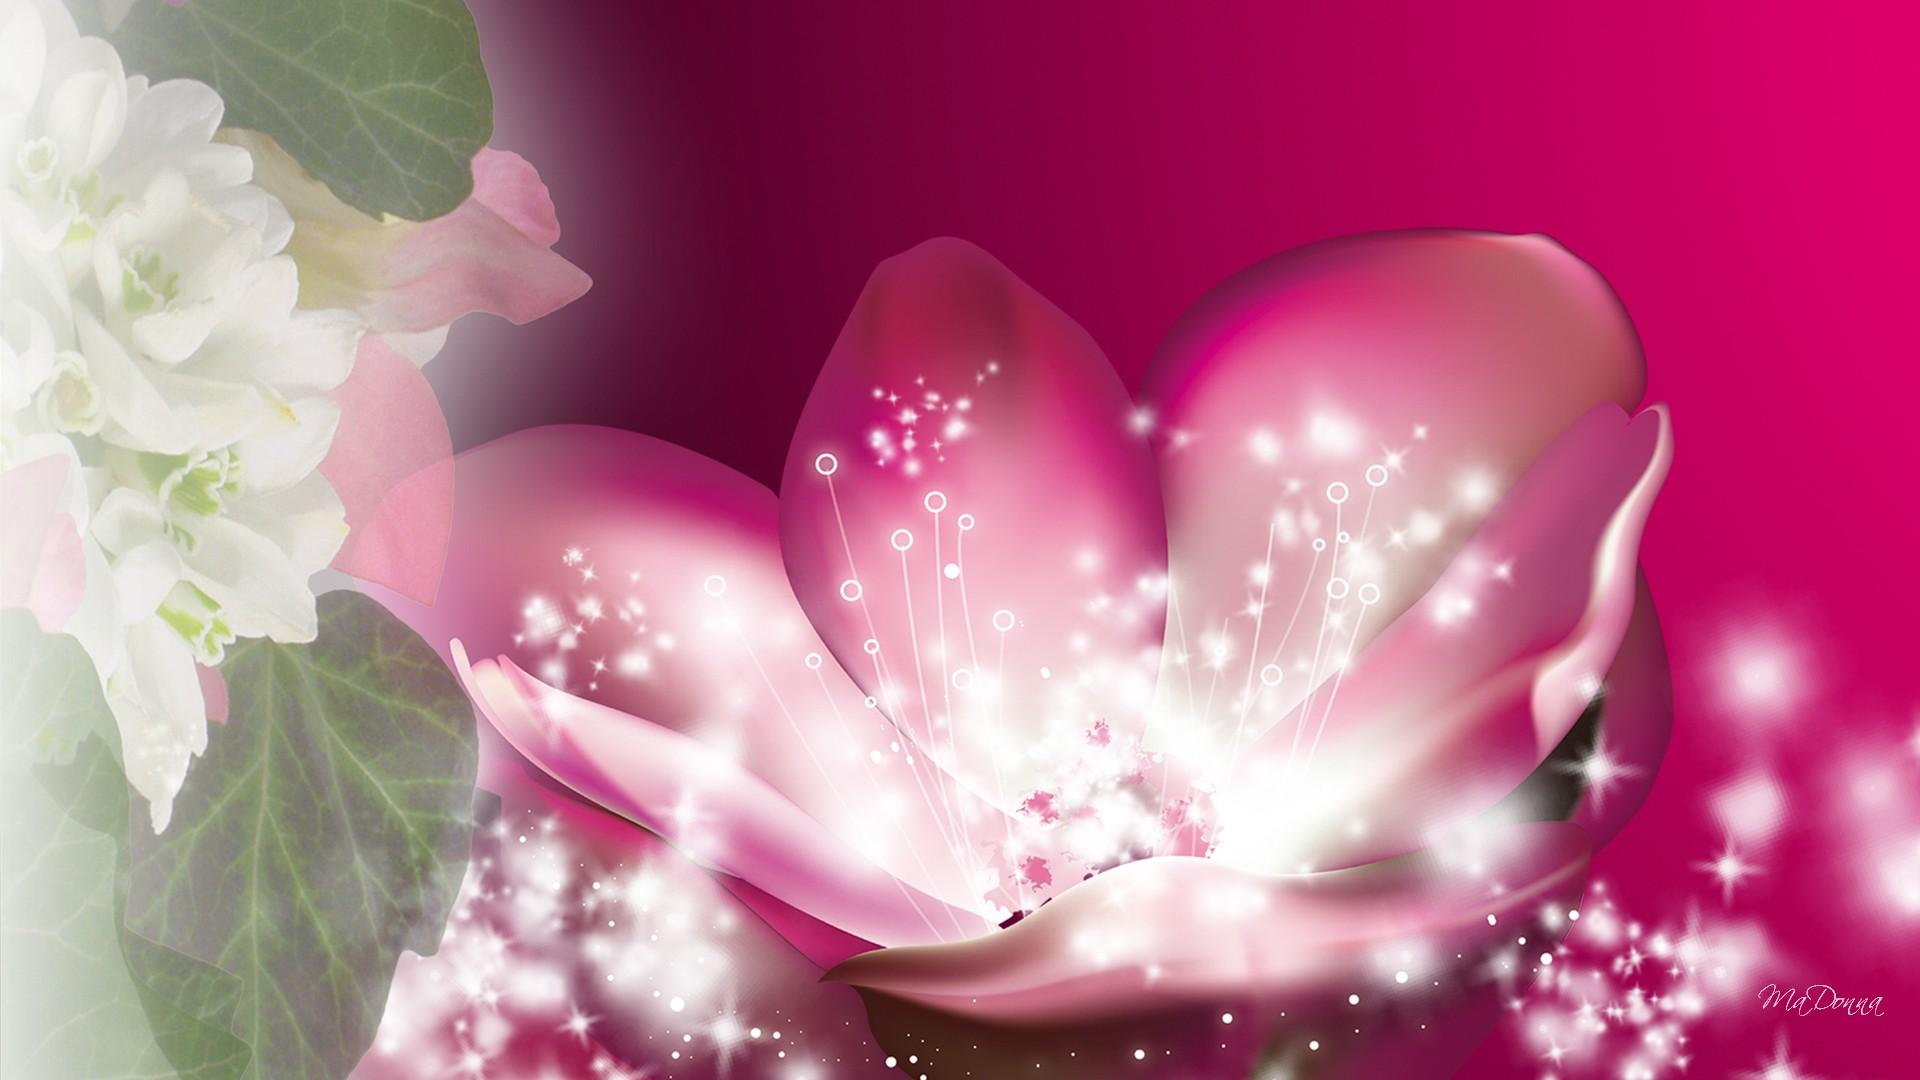 Cute Sparkly Pink Wallpapers Magical Sparkle Flower Wallpaper Nature And Landscape